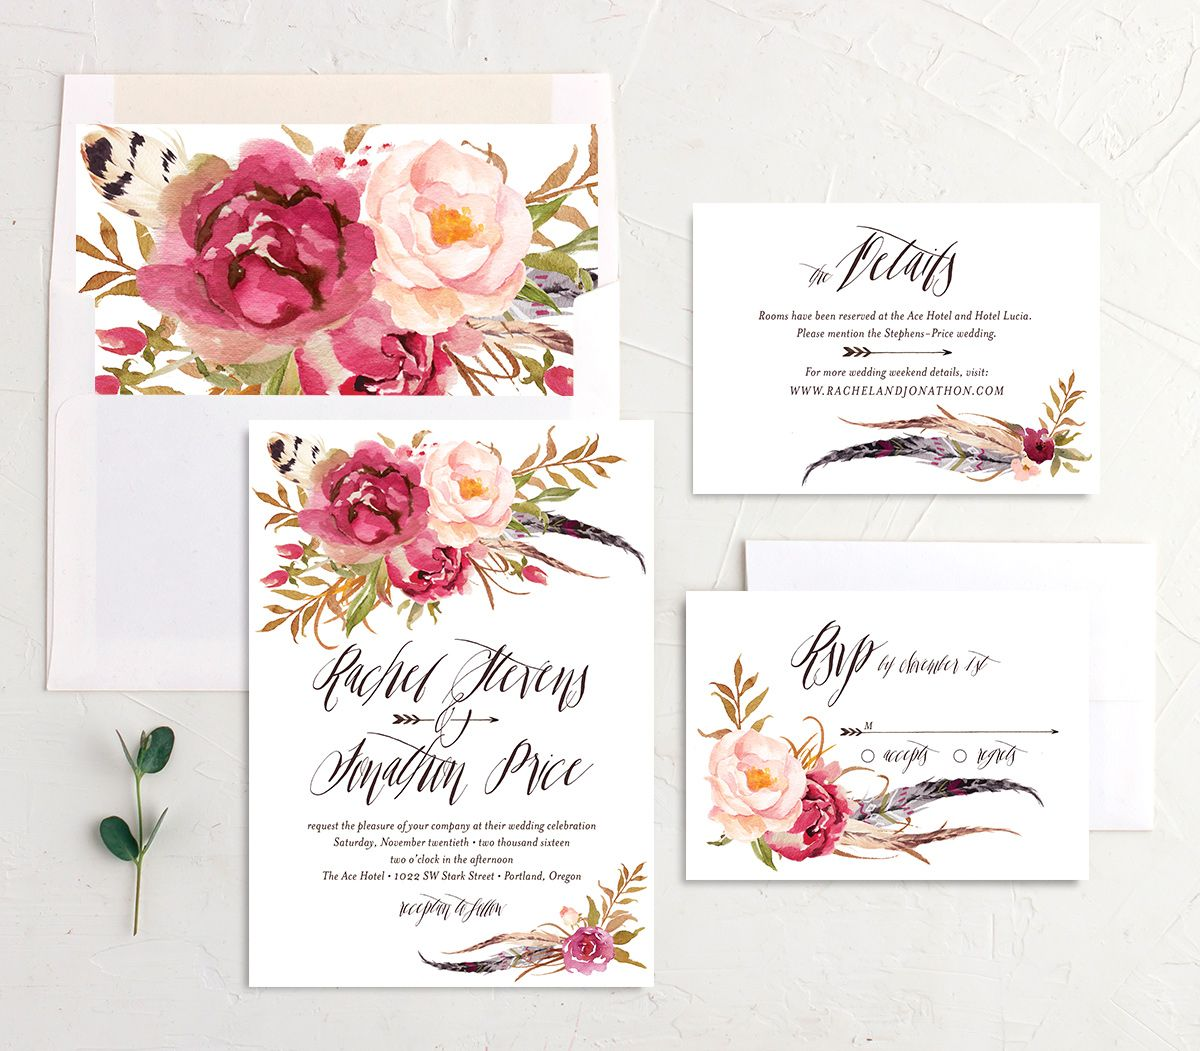 bohemian floral wedding invitation stationery suite in pink